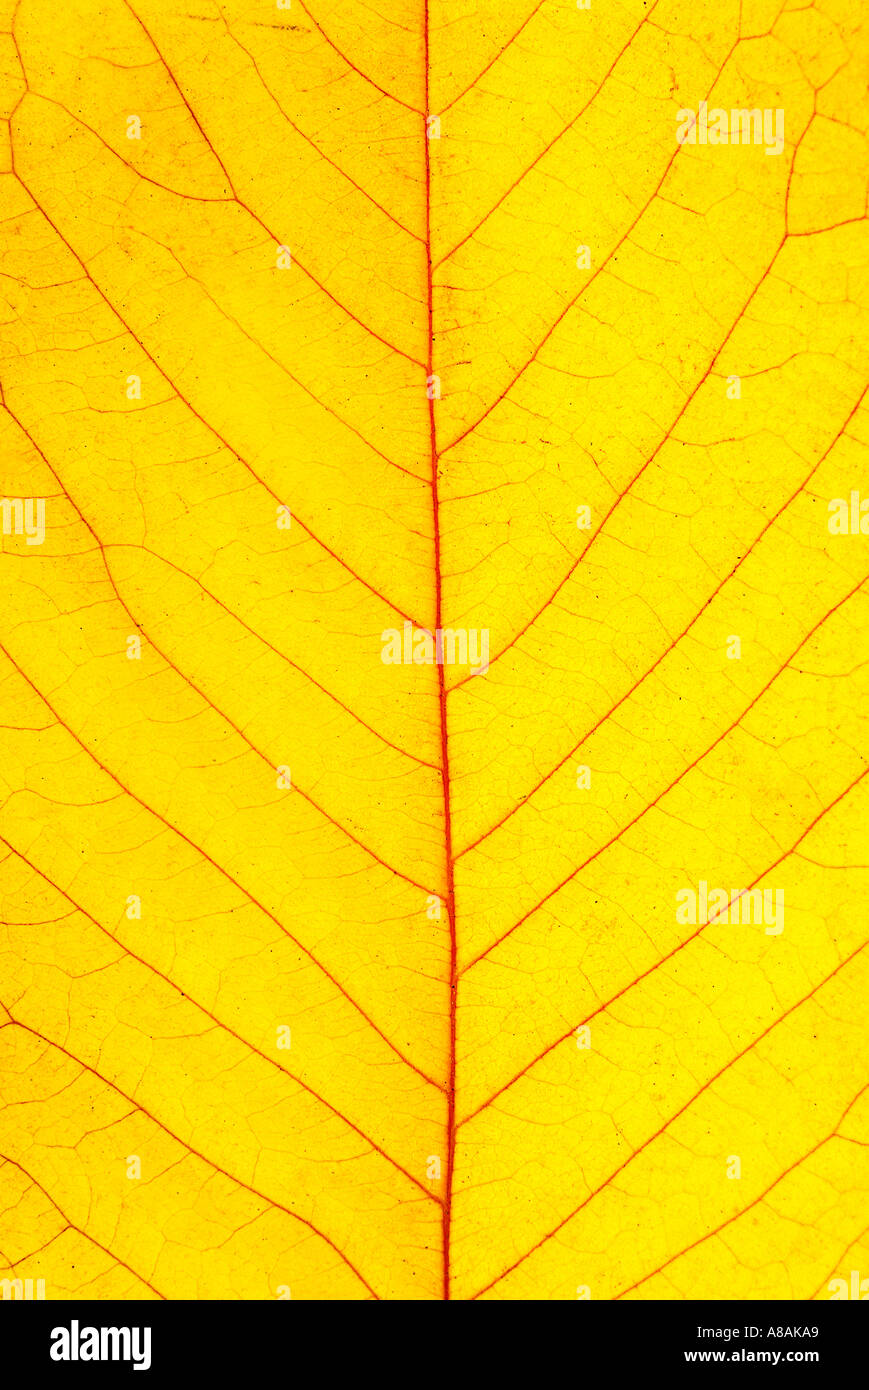 detail of a yellow cherry leave in autumn Detail gelbes Kirschblatt im Herbst - Stock Image